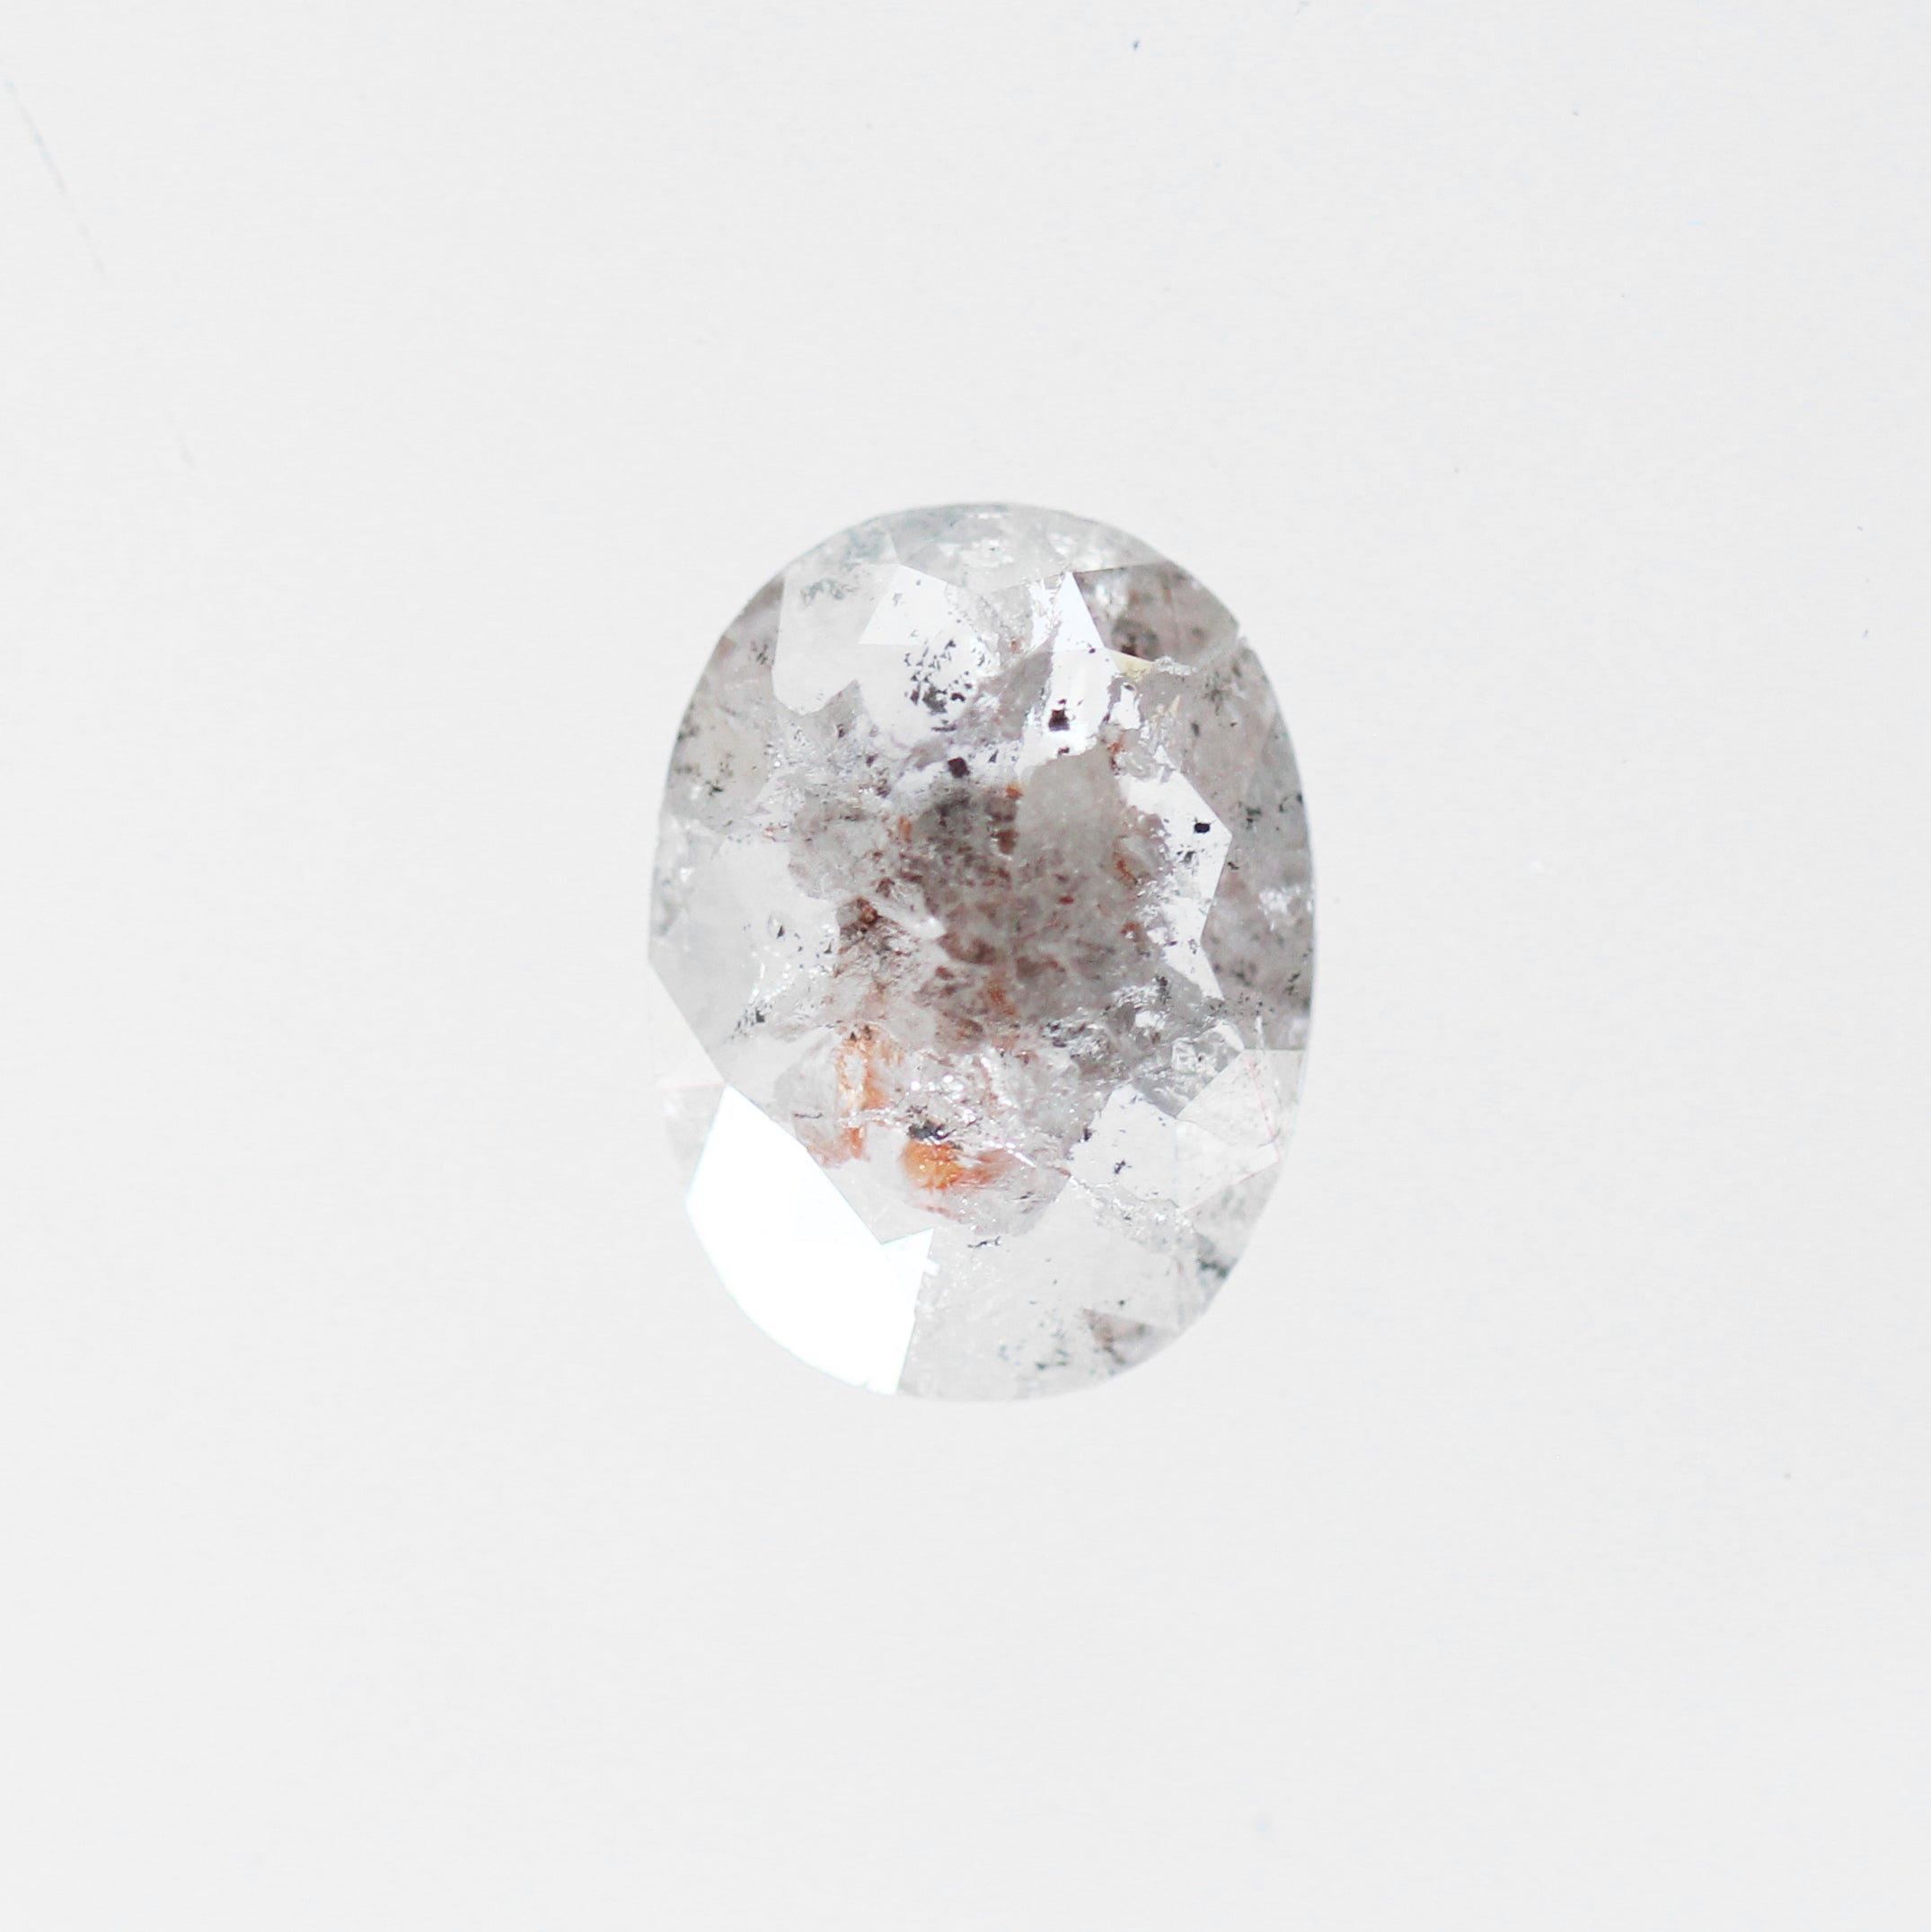 2.23 Carat Oval Celestial Diamond® for Custom Work - Inventory Code ORLS223 - Celestial Diamonds ® by Midwinter Co.